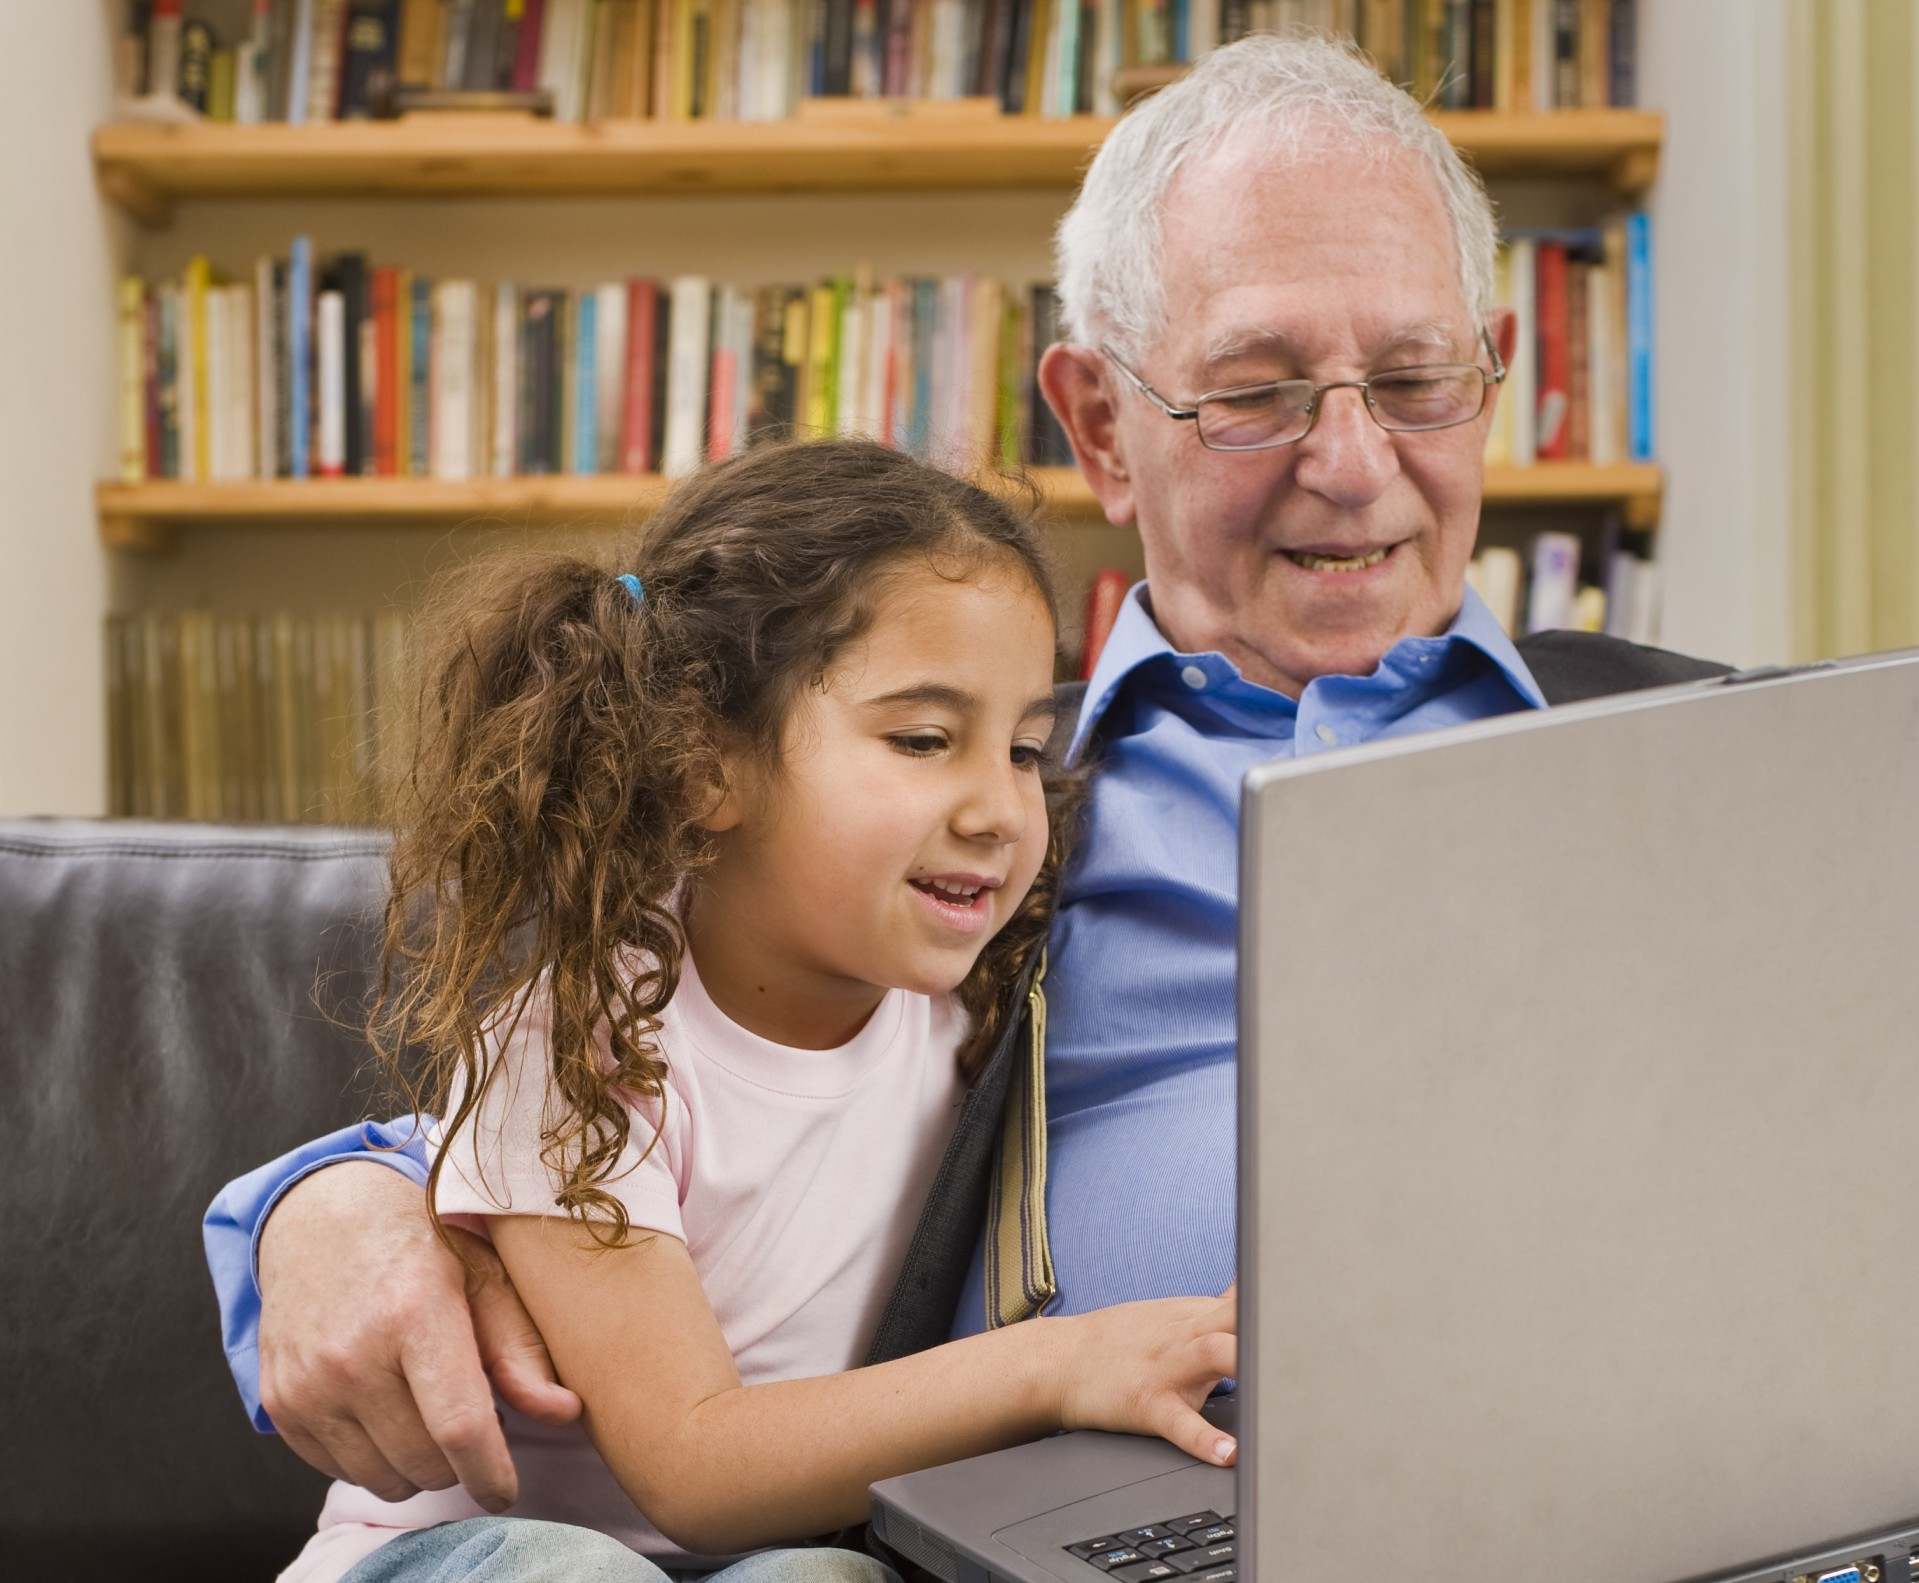 Grandfather and granddaughter with laptop computer at home